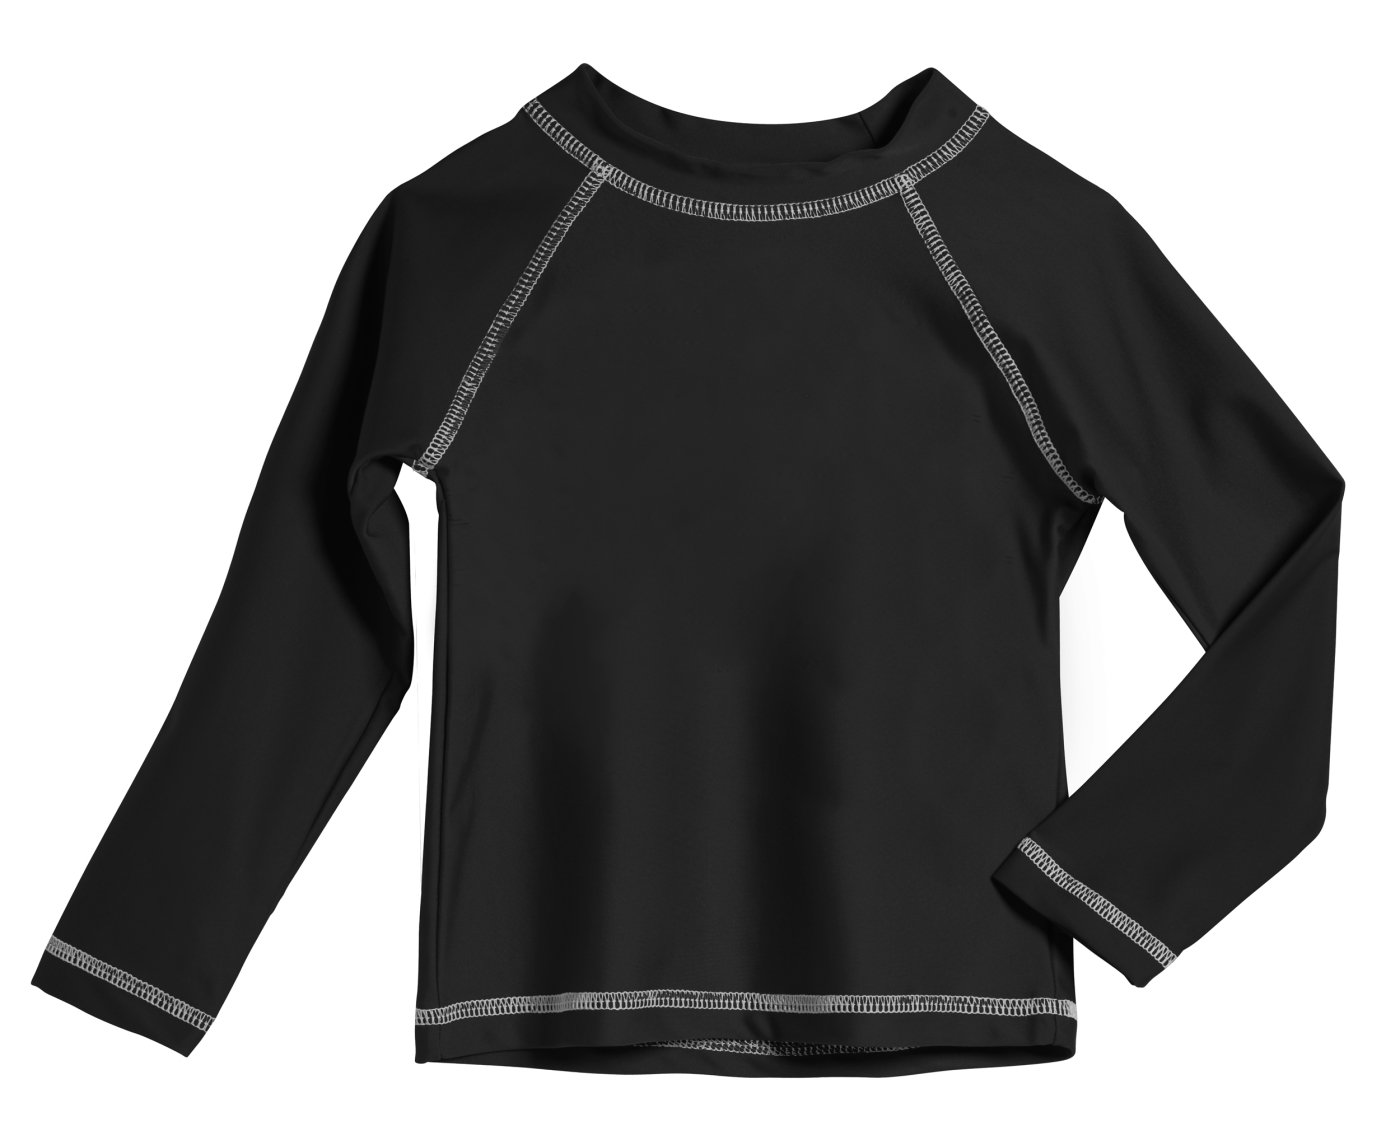 City Threads Baby Rash Guard in Long and Short Sleeves with SPF50+ Made in USA CT-RASHGUARD-P1